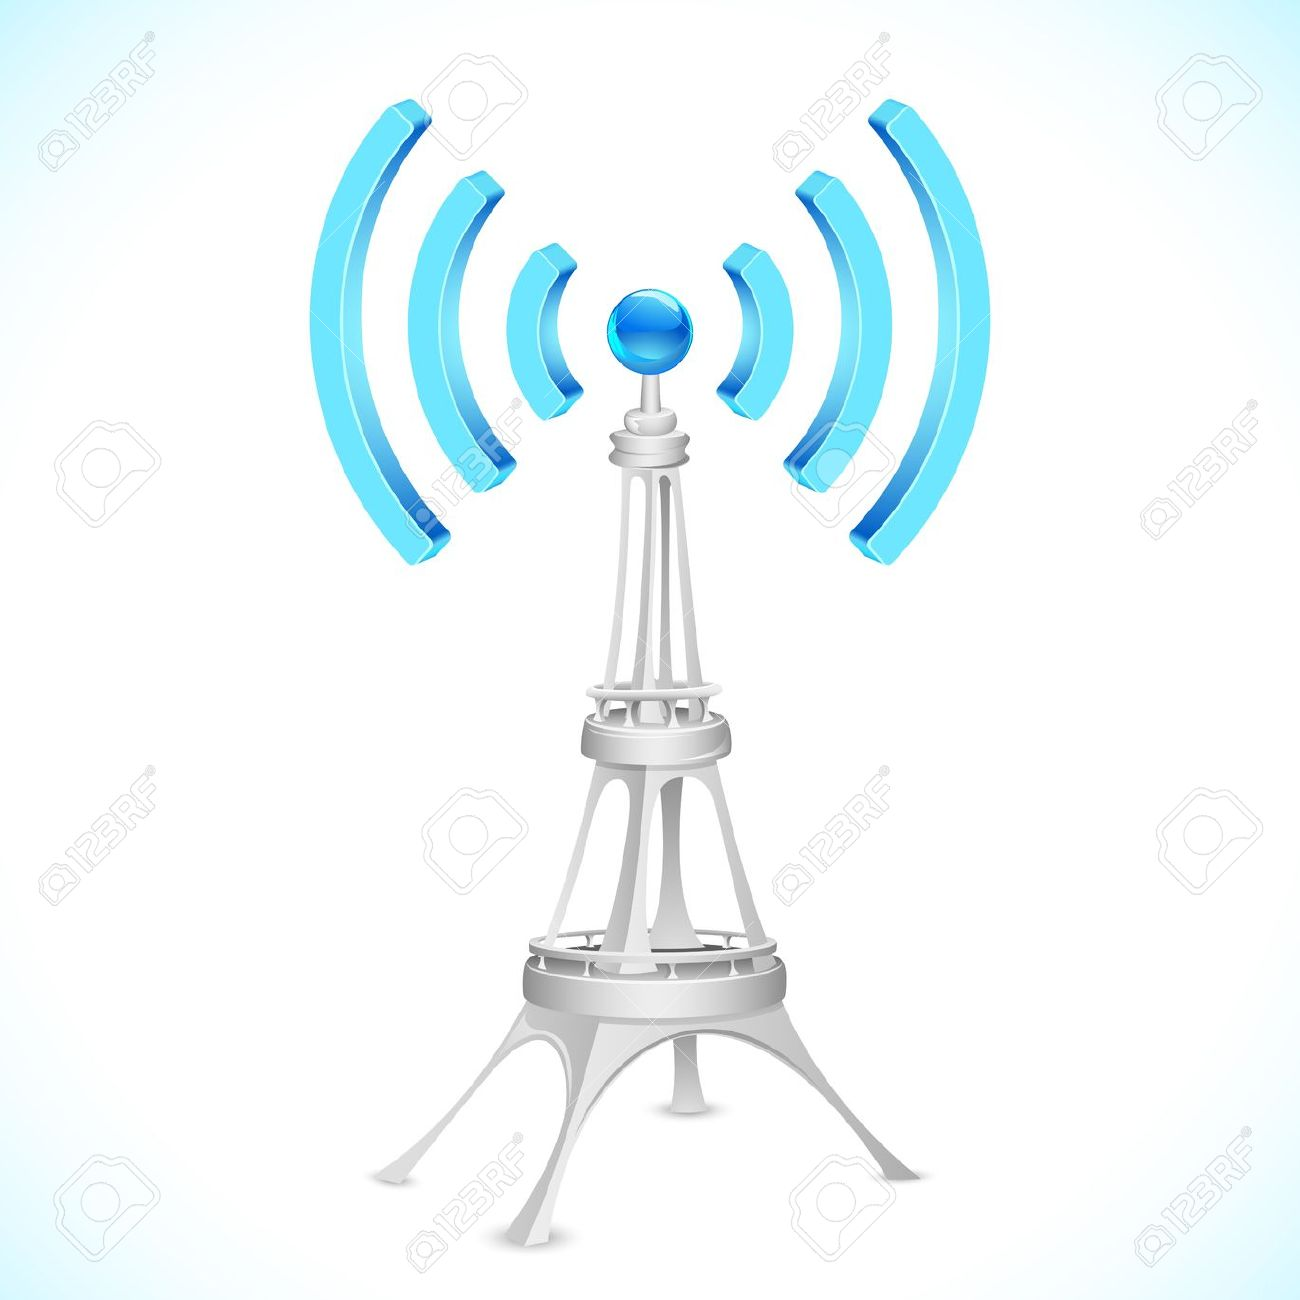 Telecommunication towers clipart - Clipground